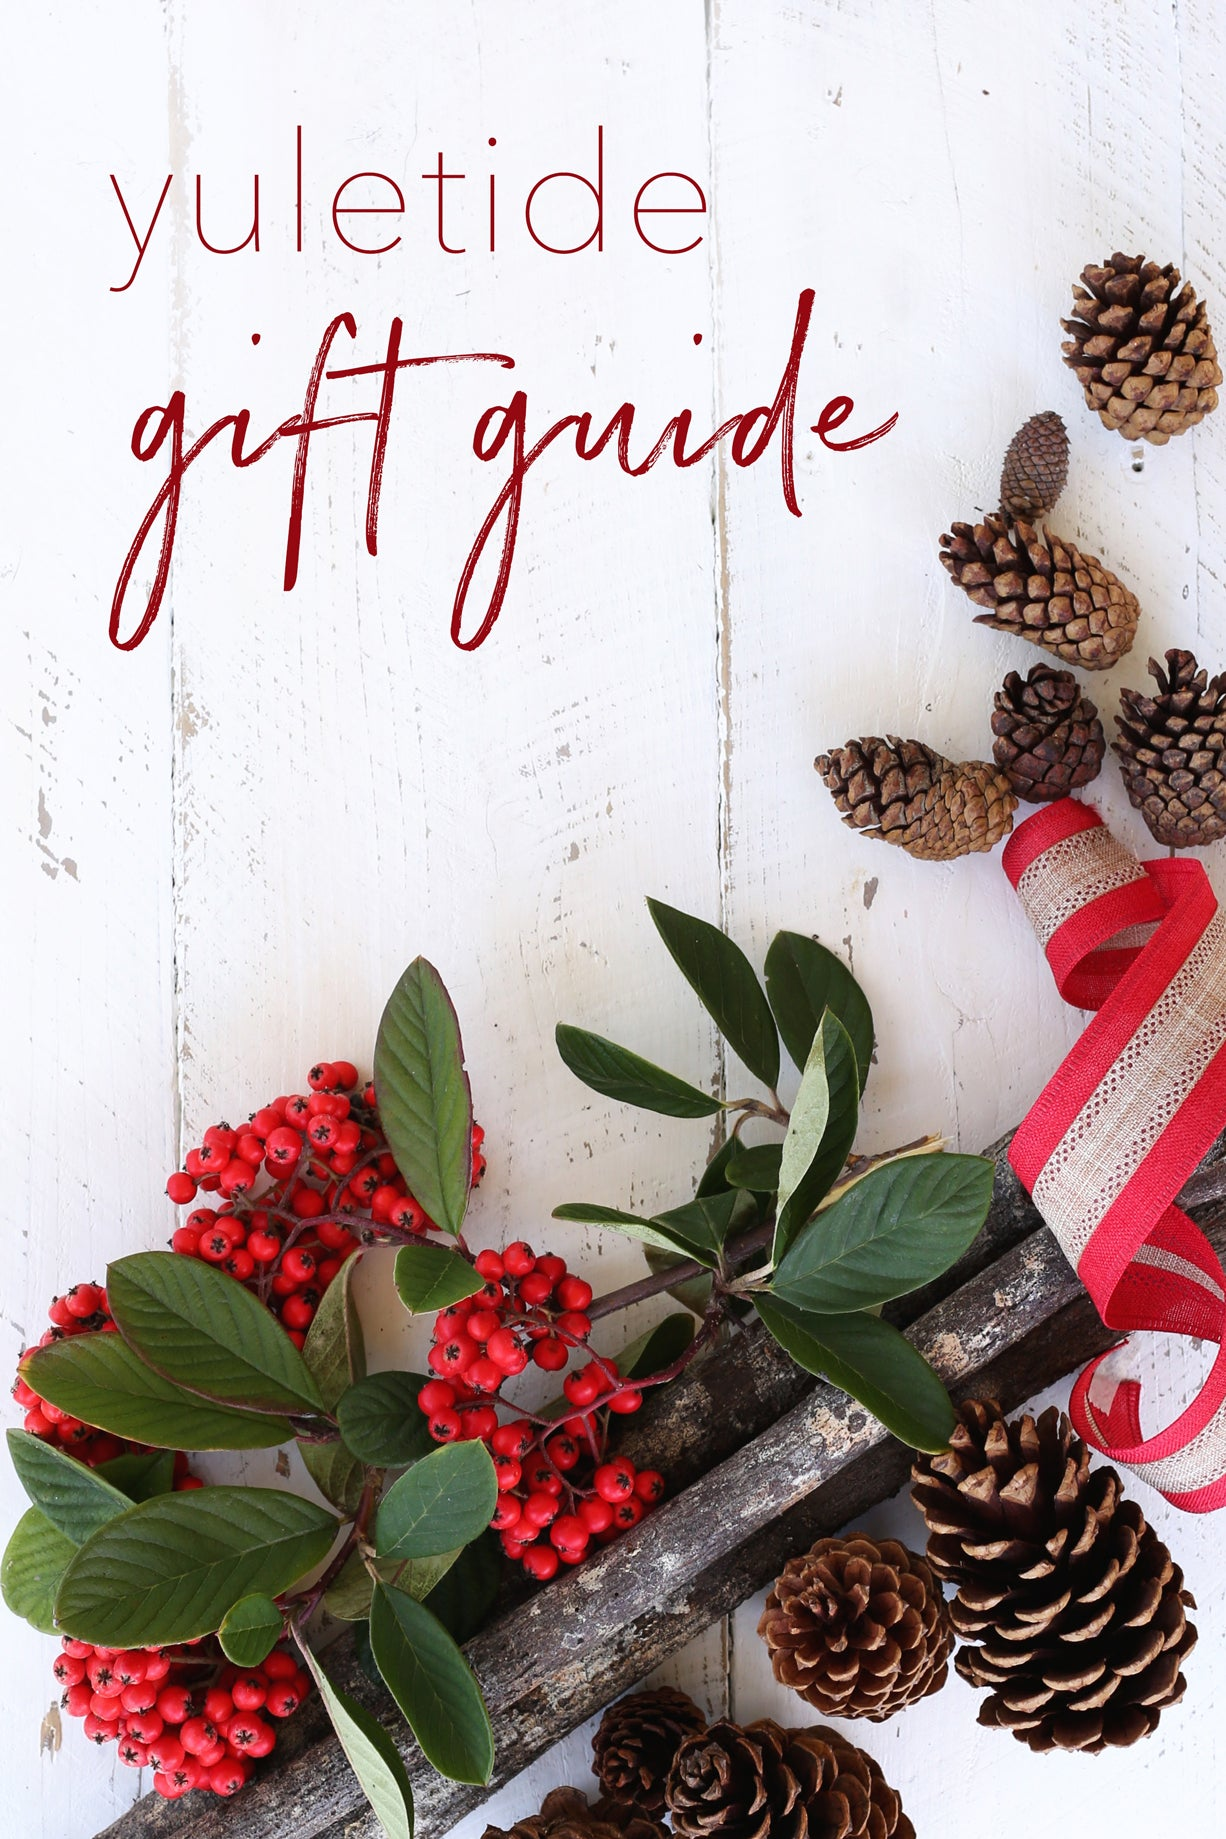 The Yuletide Gift Guide - Gifts for every lady on your list!